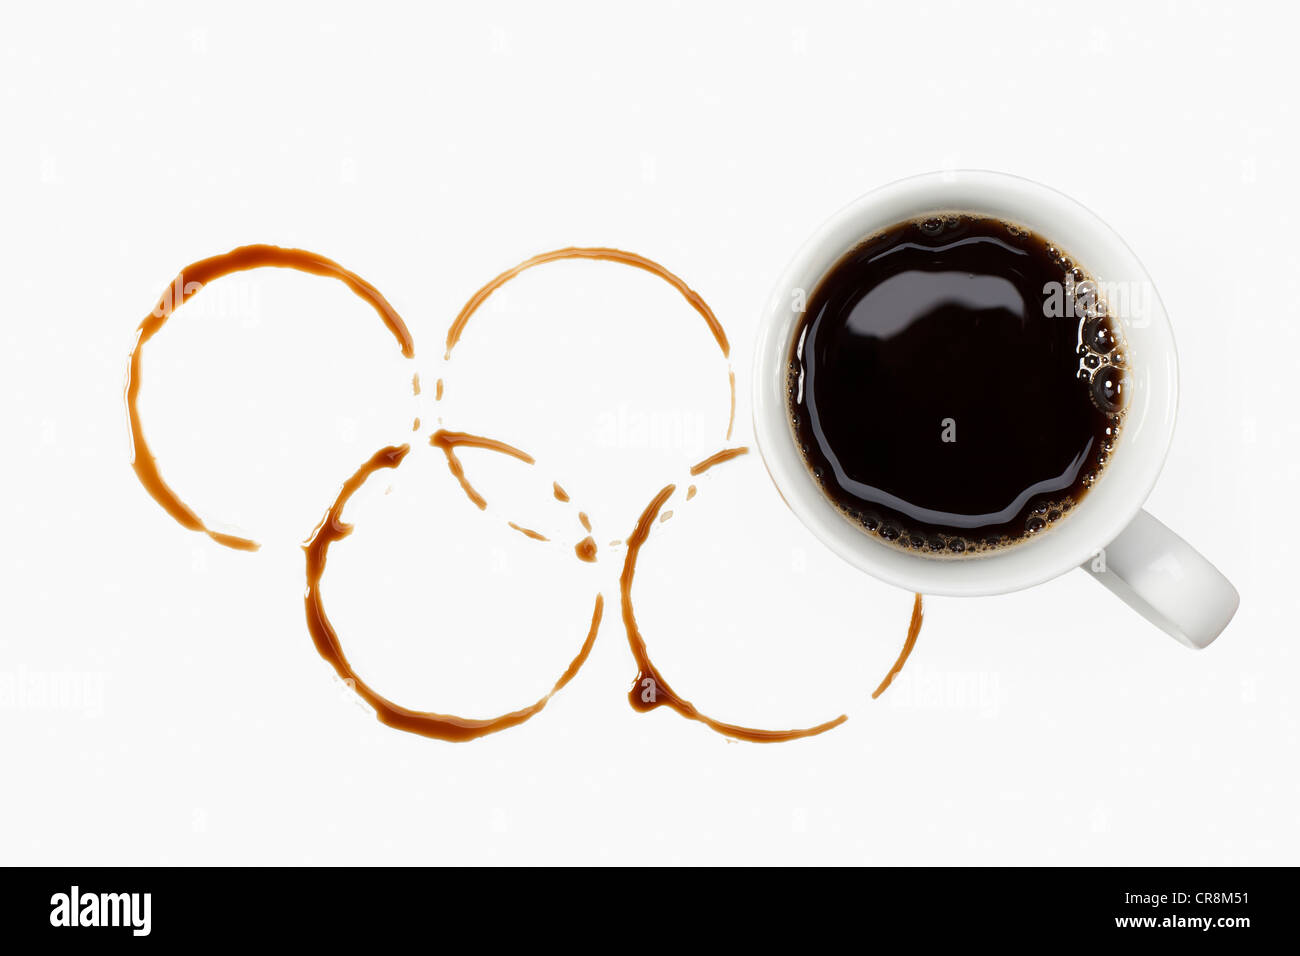 Olympic coffee, doping - Stock Image